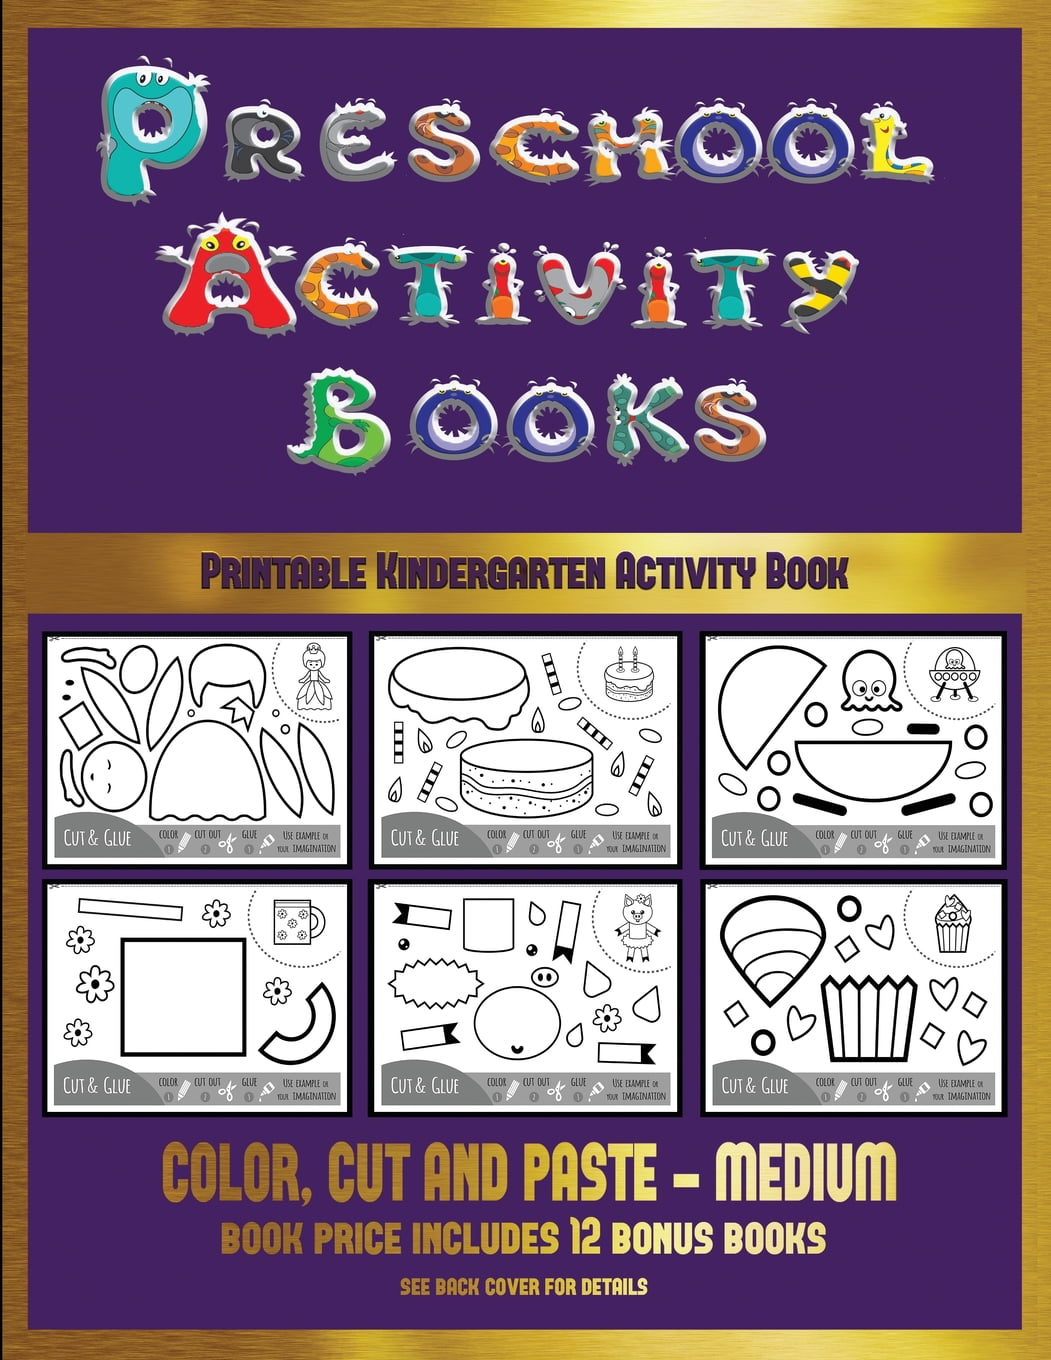 Printable Kindergarten Activity Book: Printable Kindergarten Activity Book (Preschool  Activity Books - Medium) : 40 Black And White